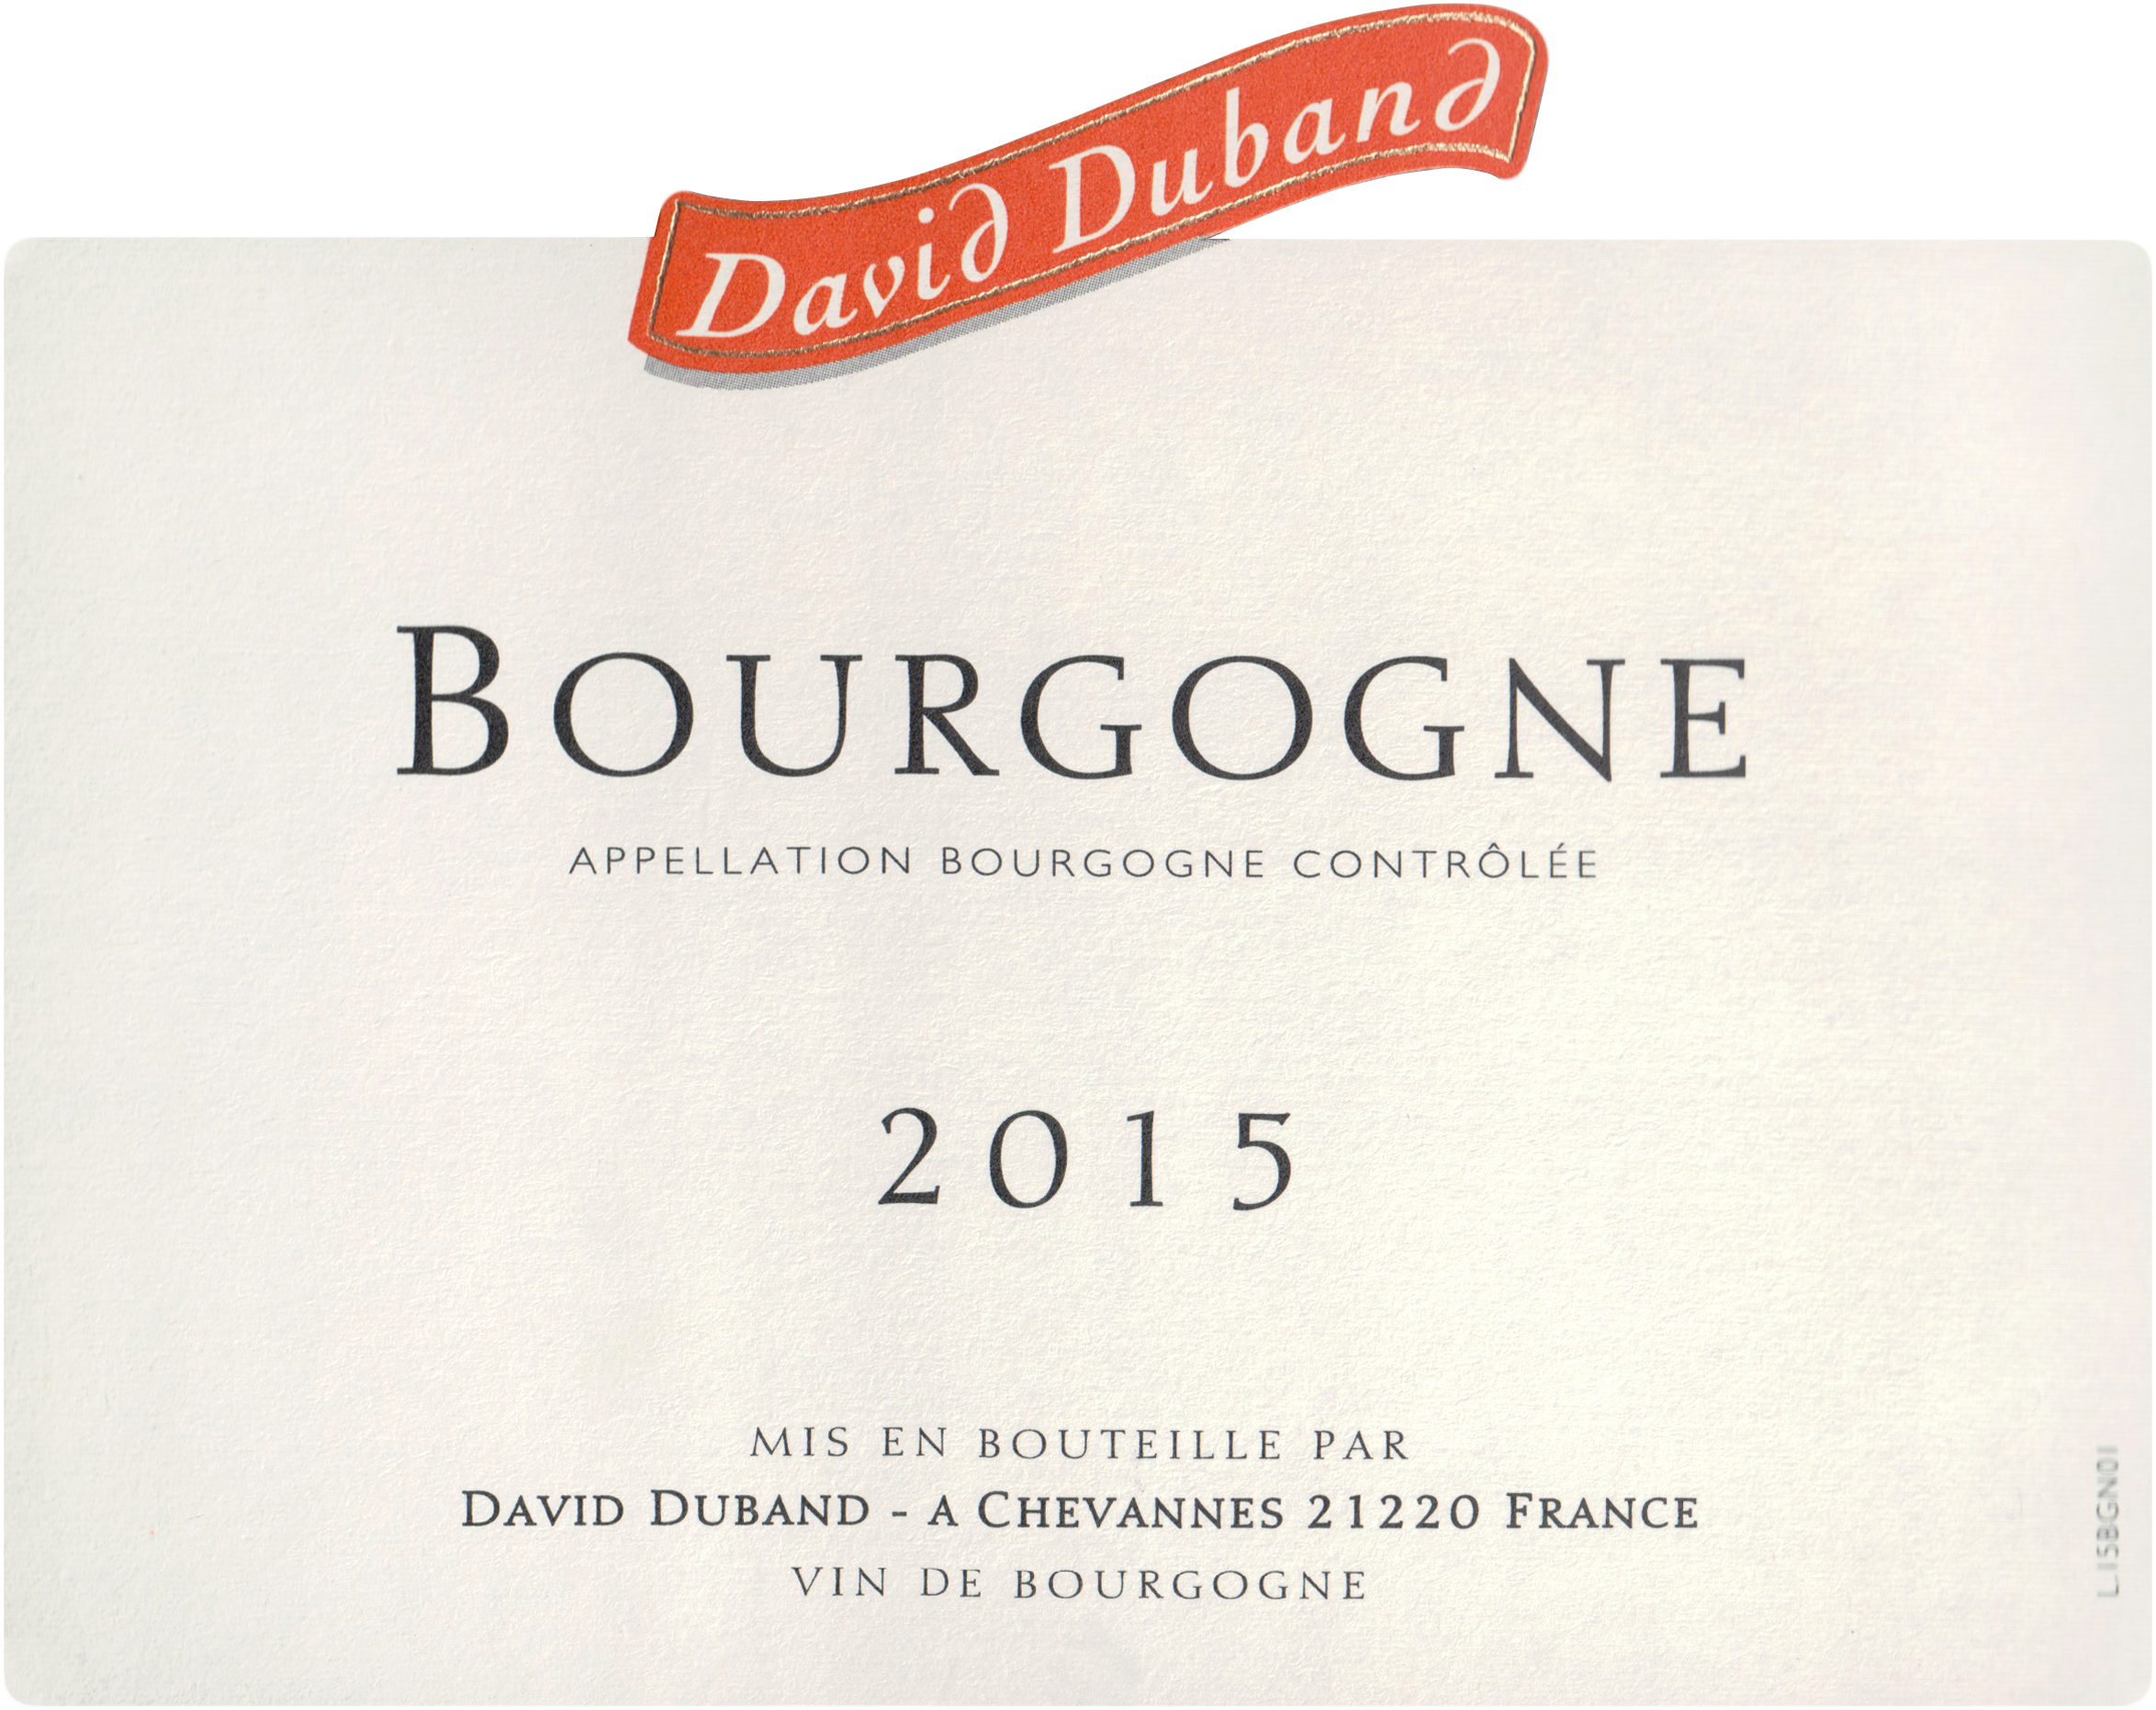 David duband Wine - Reviews & Ratings | Compare Prices ...